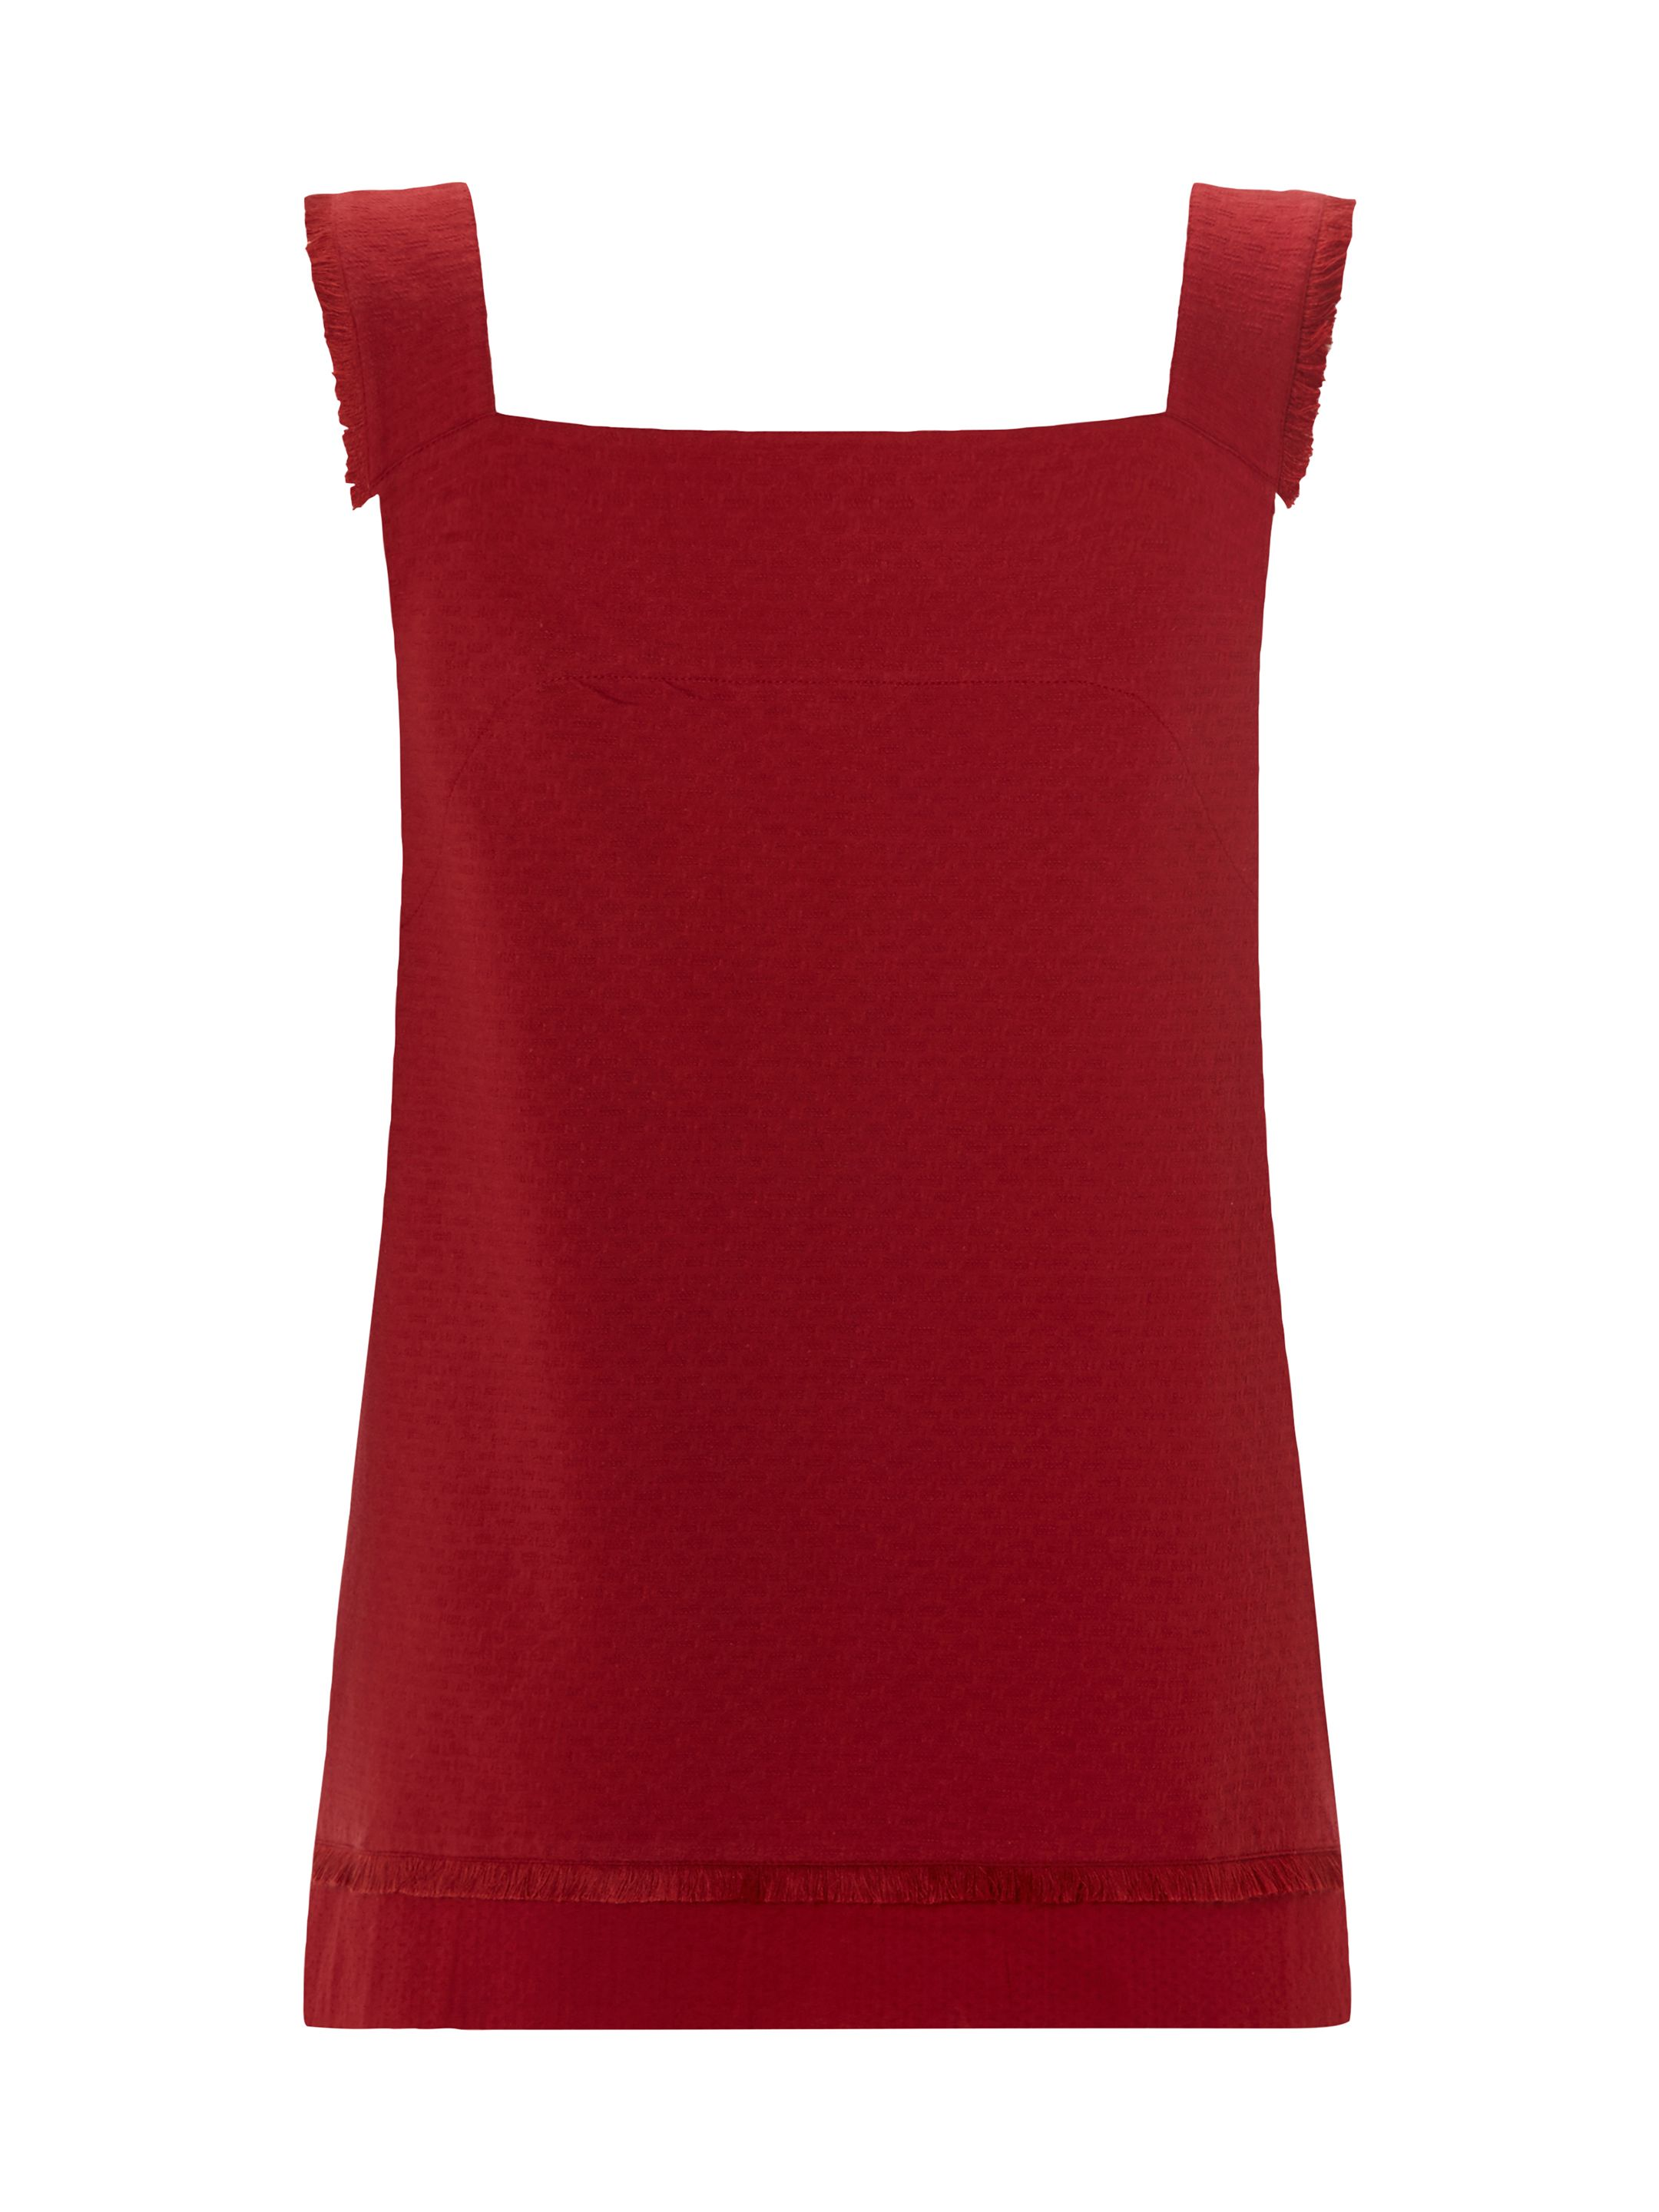 White Stuff Fraya Jersey Vest, Red